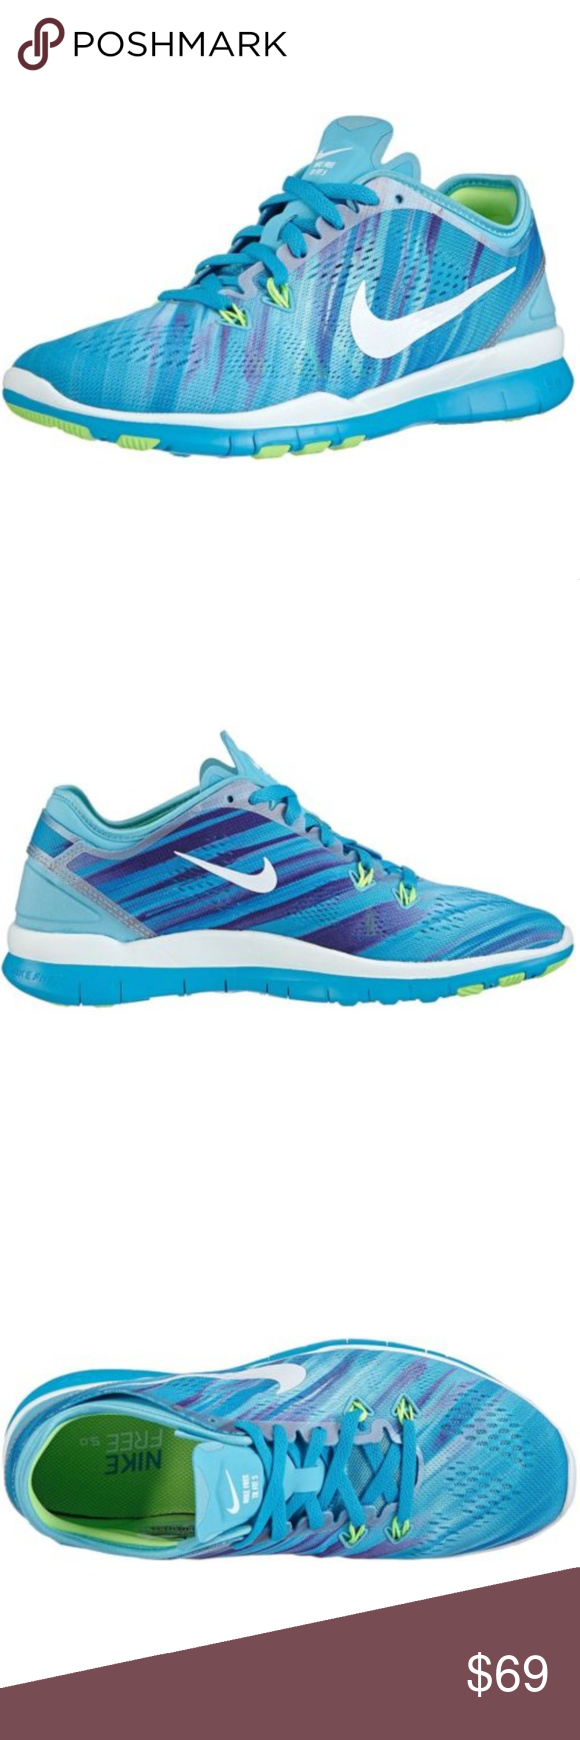 Women s Nike Free 5.0 TR Fit 5 Print Training Shoe This listing is for one  pair of Nike shoes 7d26efaedec